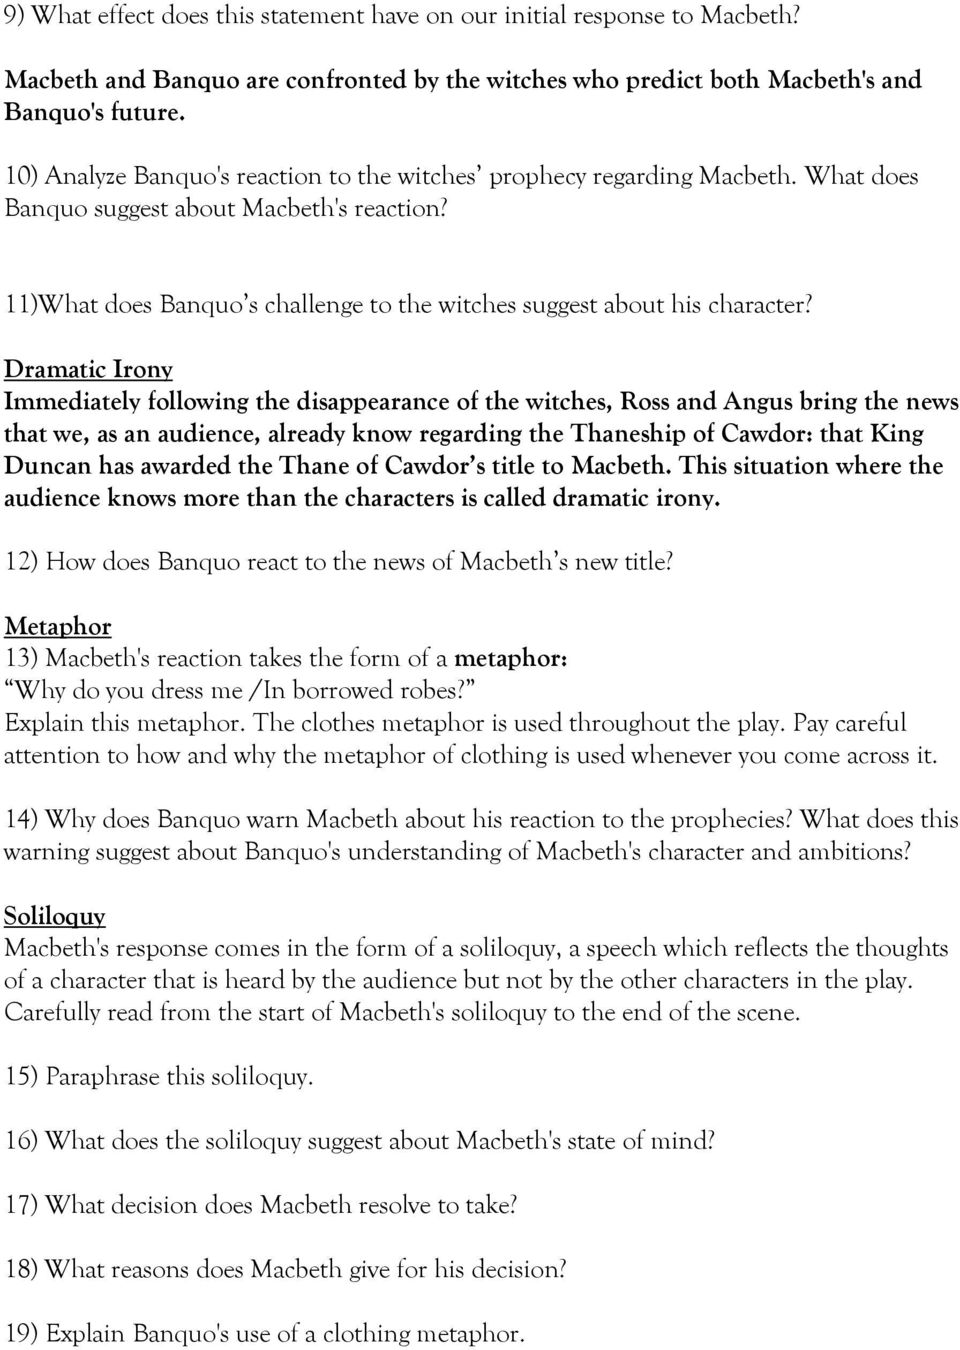 macbeth study questions pdf dramatic irony immediately following the disappearance of the witches ross and angus bring the news